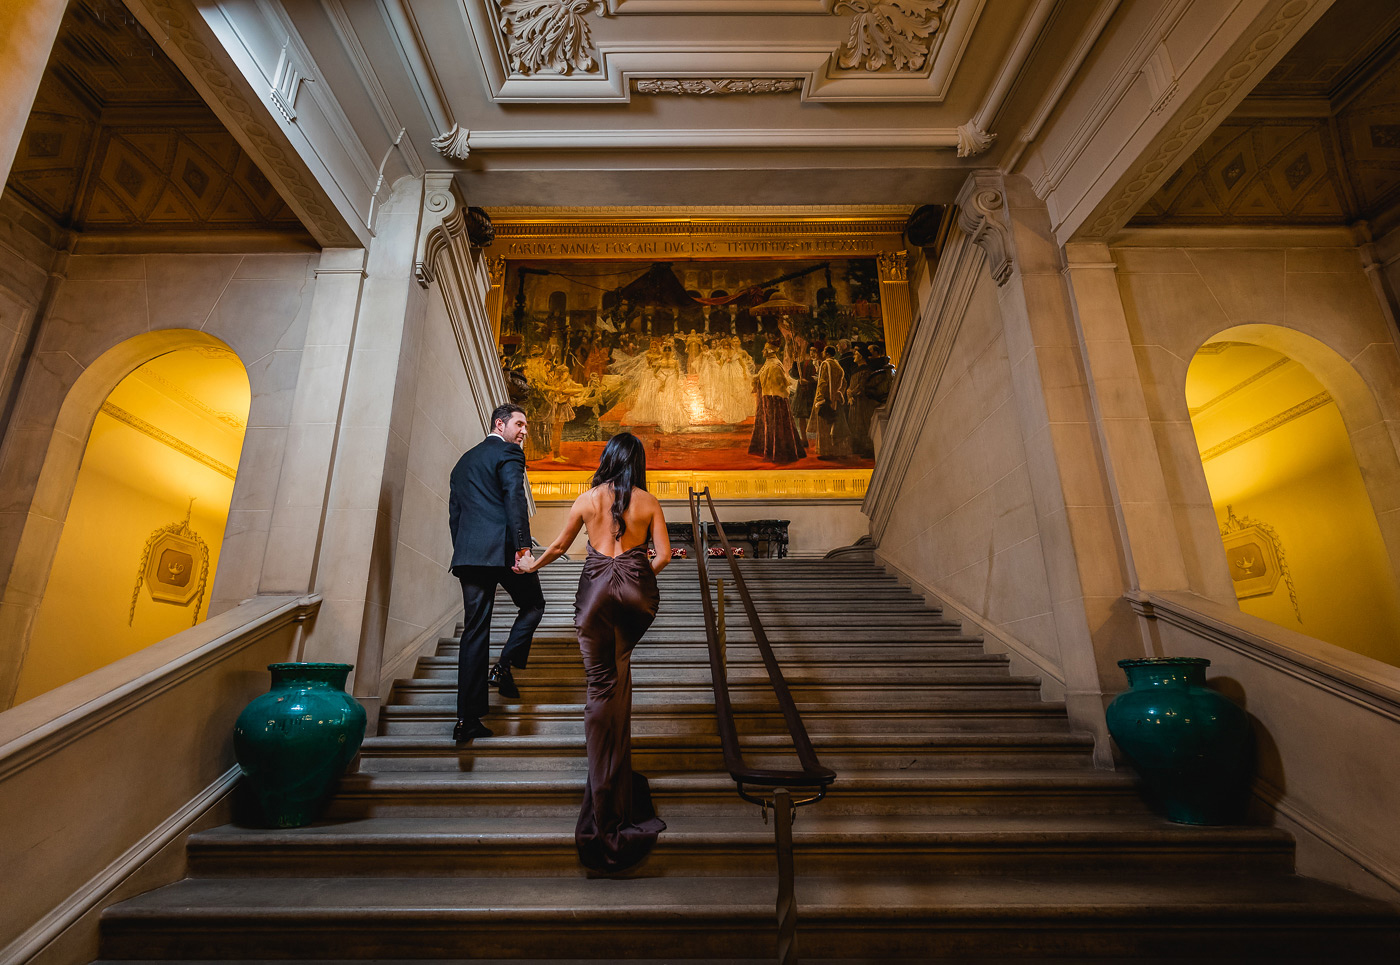 <h2>Stunning view up the Great Staircase</h2>Photo by Jeff Simpson.